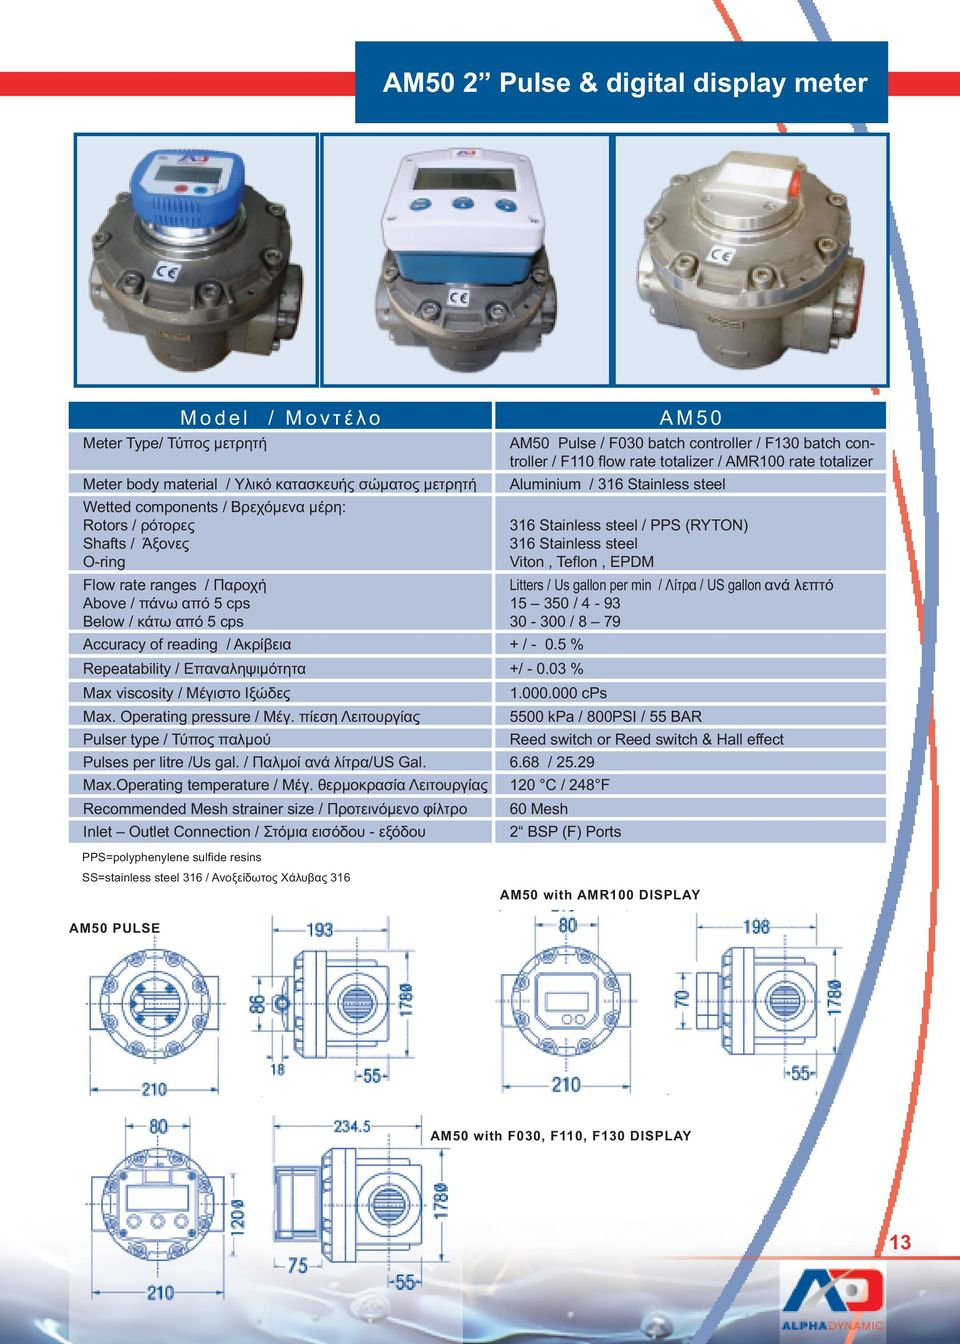 Operating pressure / Μέγ. πίεση Λειτουργίας 5500 kpa / 800PSI / 55 BAR Pulser type / Τύπος παλµού Reed switch or Reed switch & Hall effect Pulses per litre /Us gal. / Παλµοί ανά λίτρα/us Gal. 6.